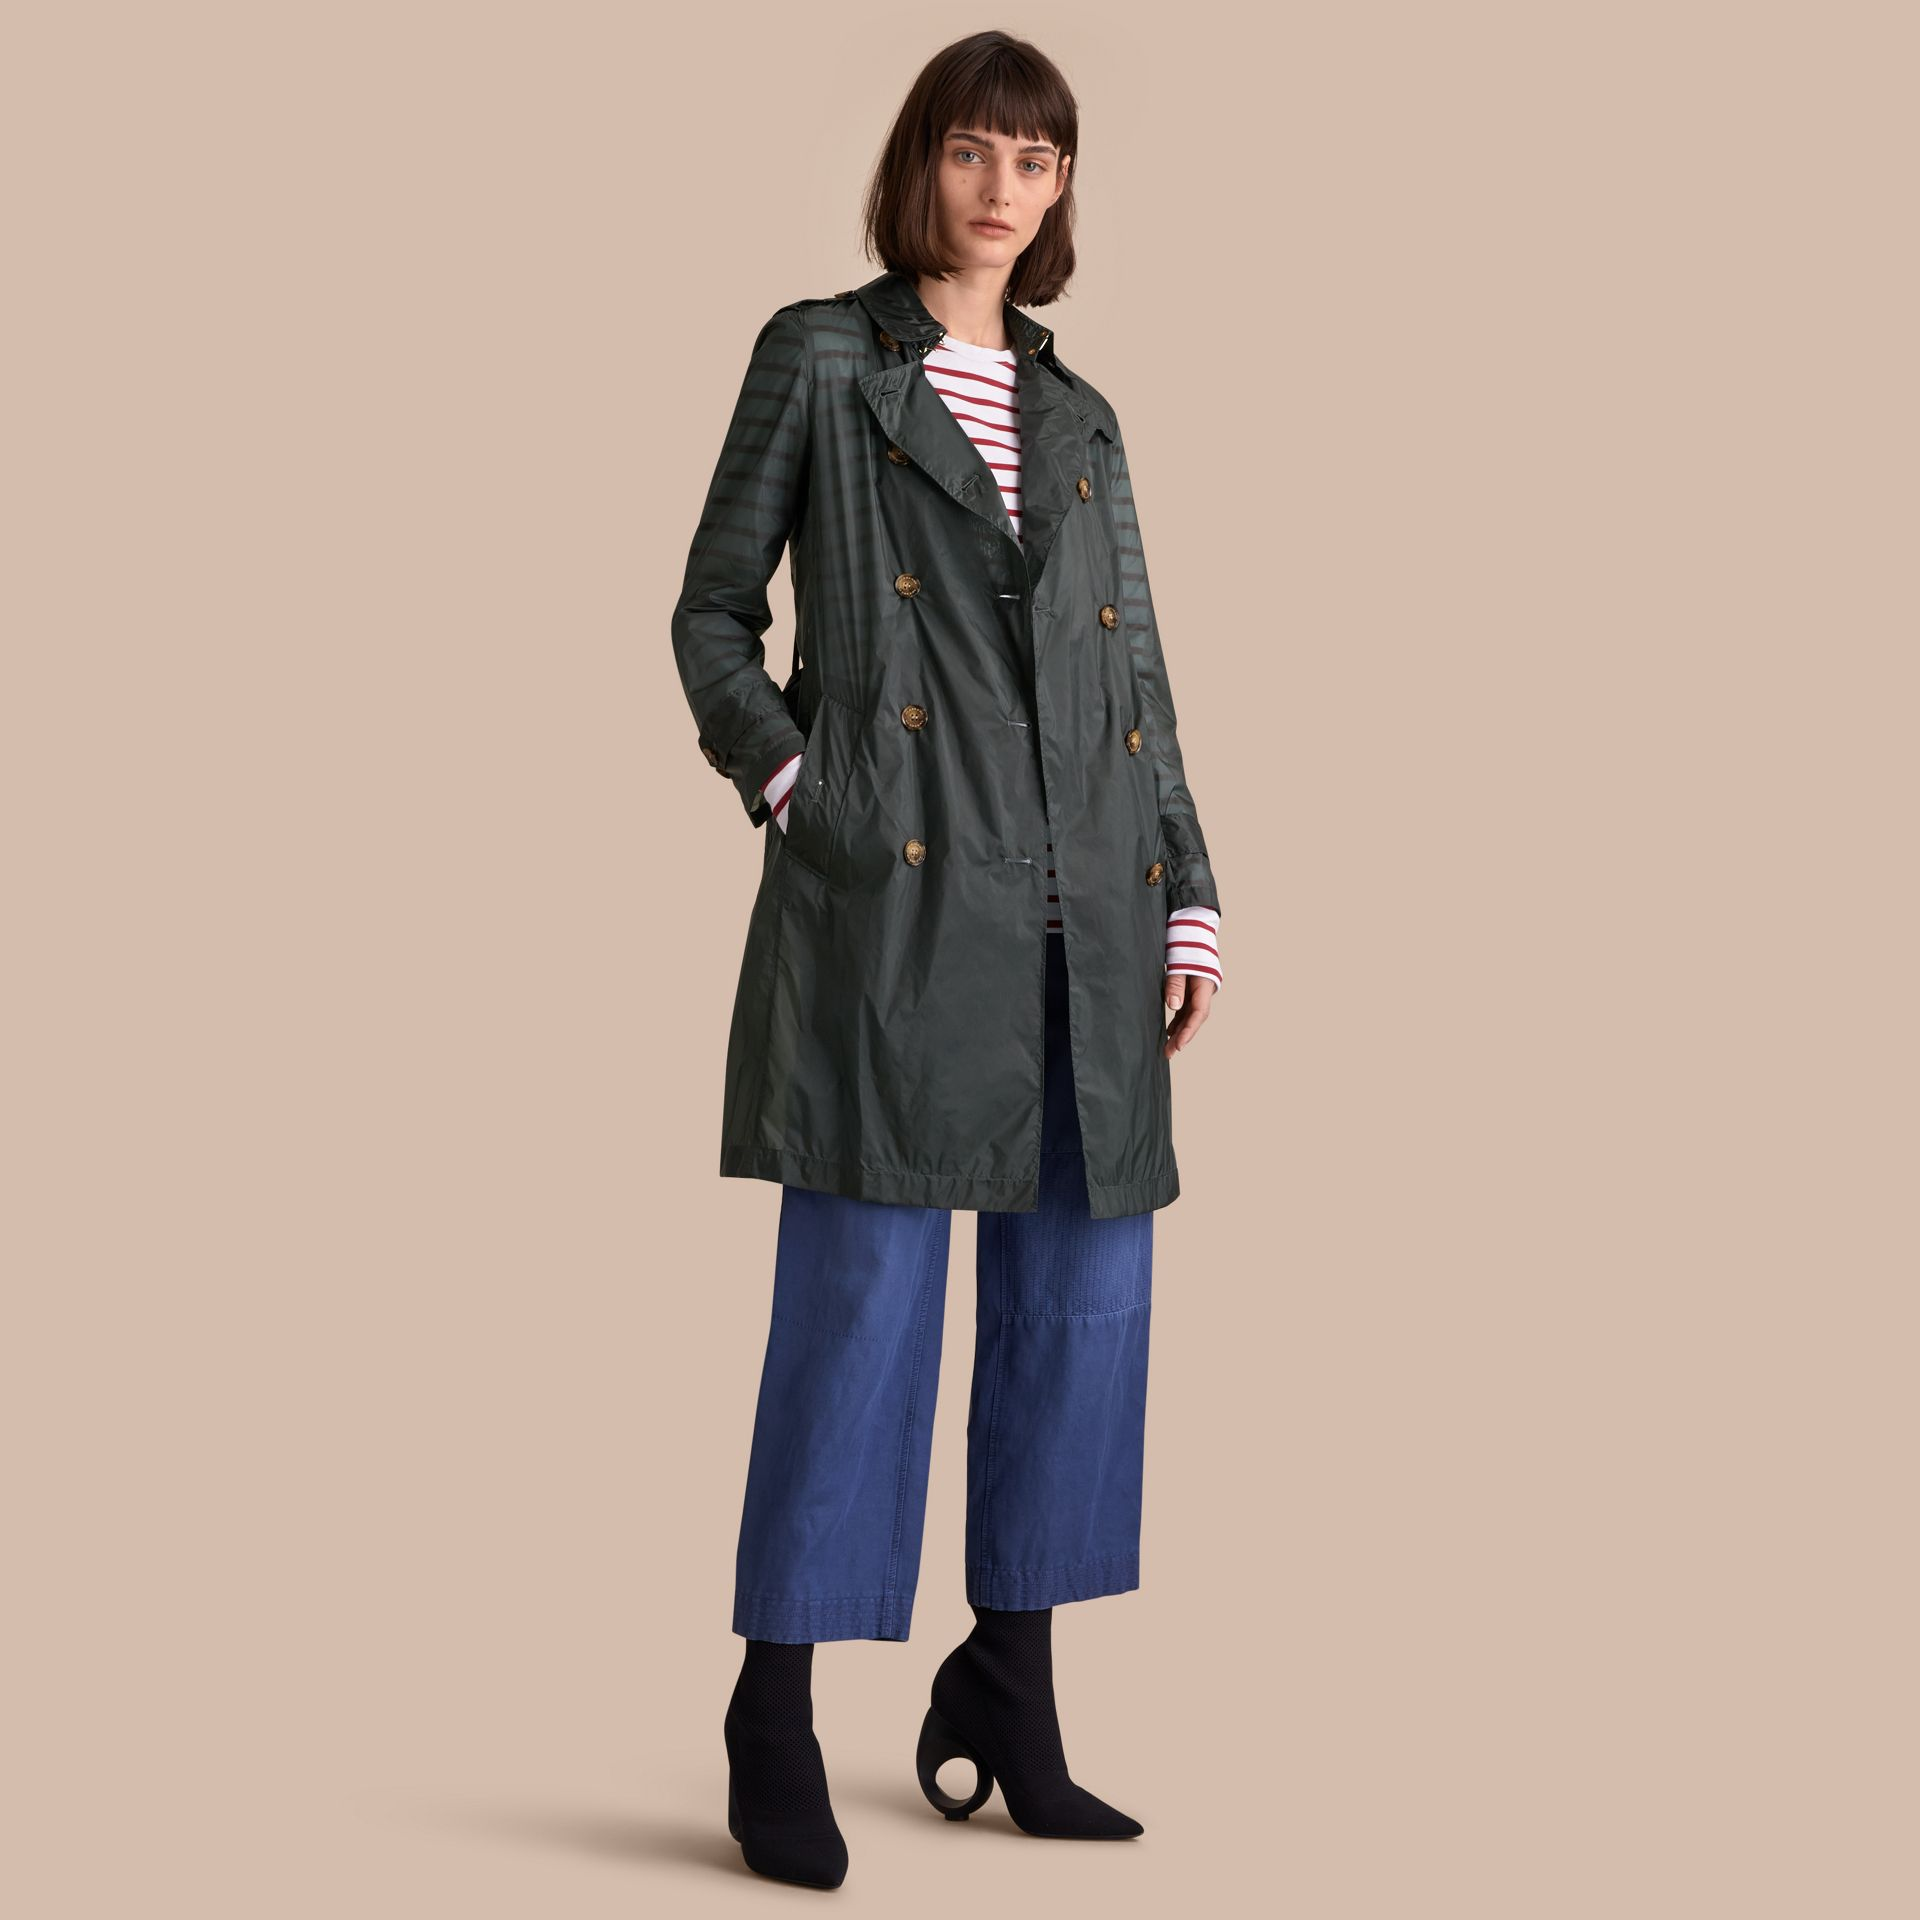 Super-lightweight Trench Coat in Vintage Green - Women | Burberry - gallery image 1